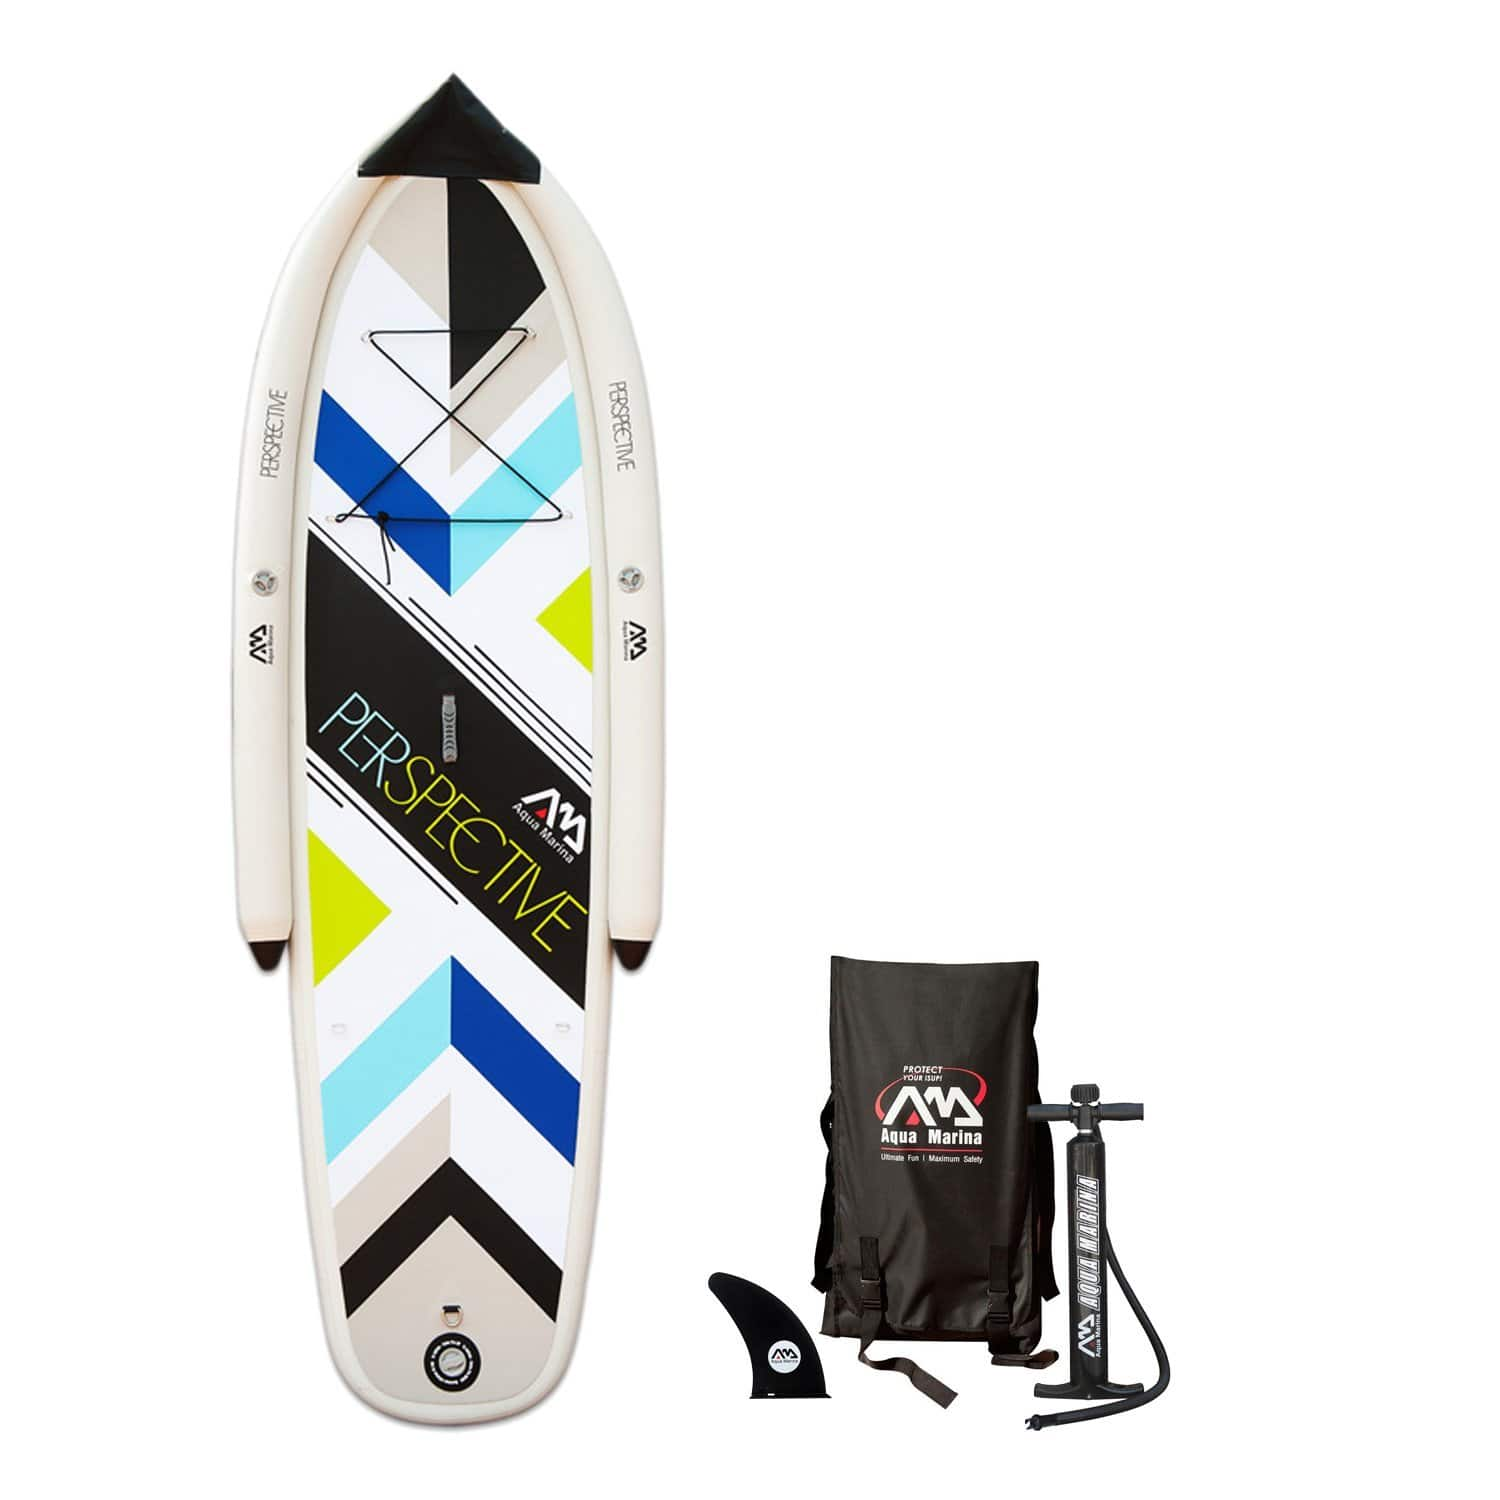 9' 9 inch Aqua Marina Beginner Inflatable Stand-up Paddle Board (up to 176lbs) $99 AC + Free Shipping